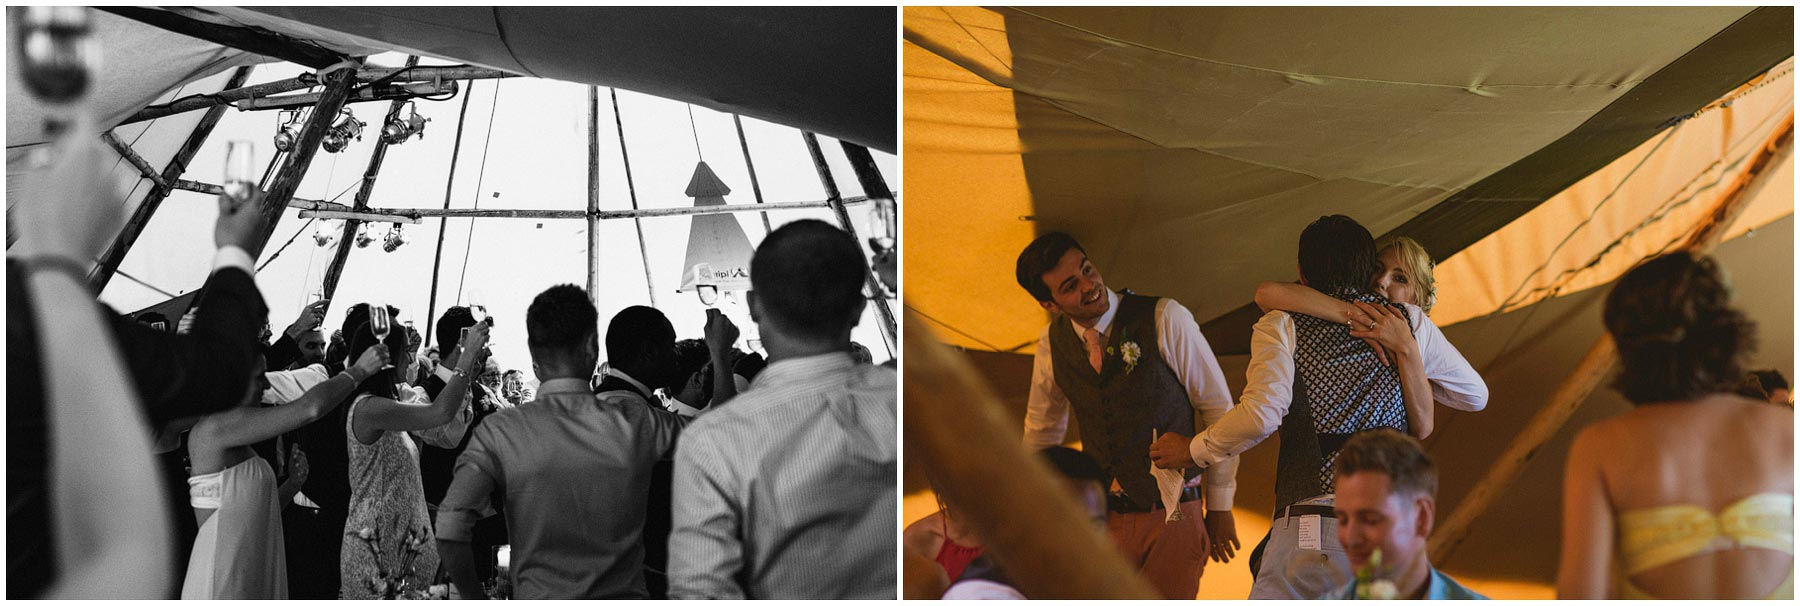 Kent-Festival-Tipi-wedding-photography_0132